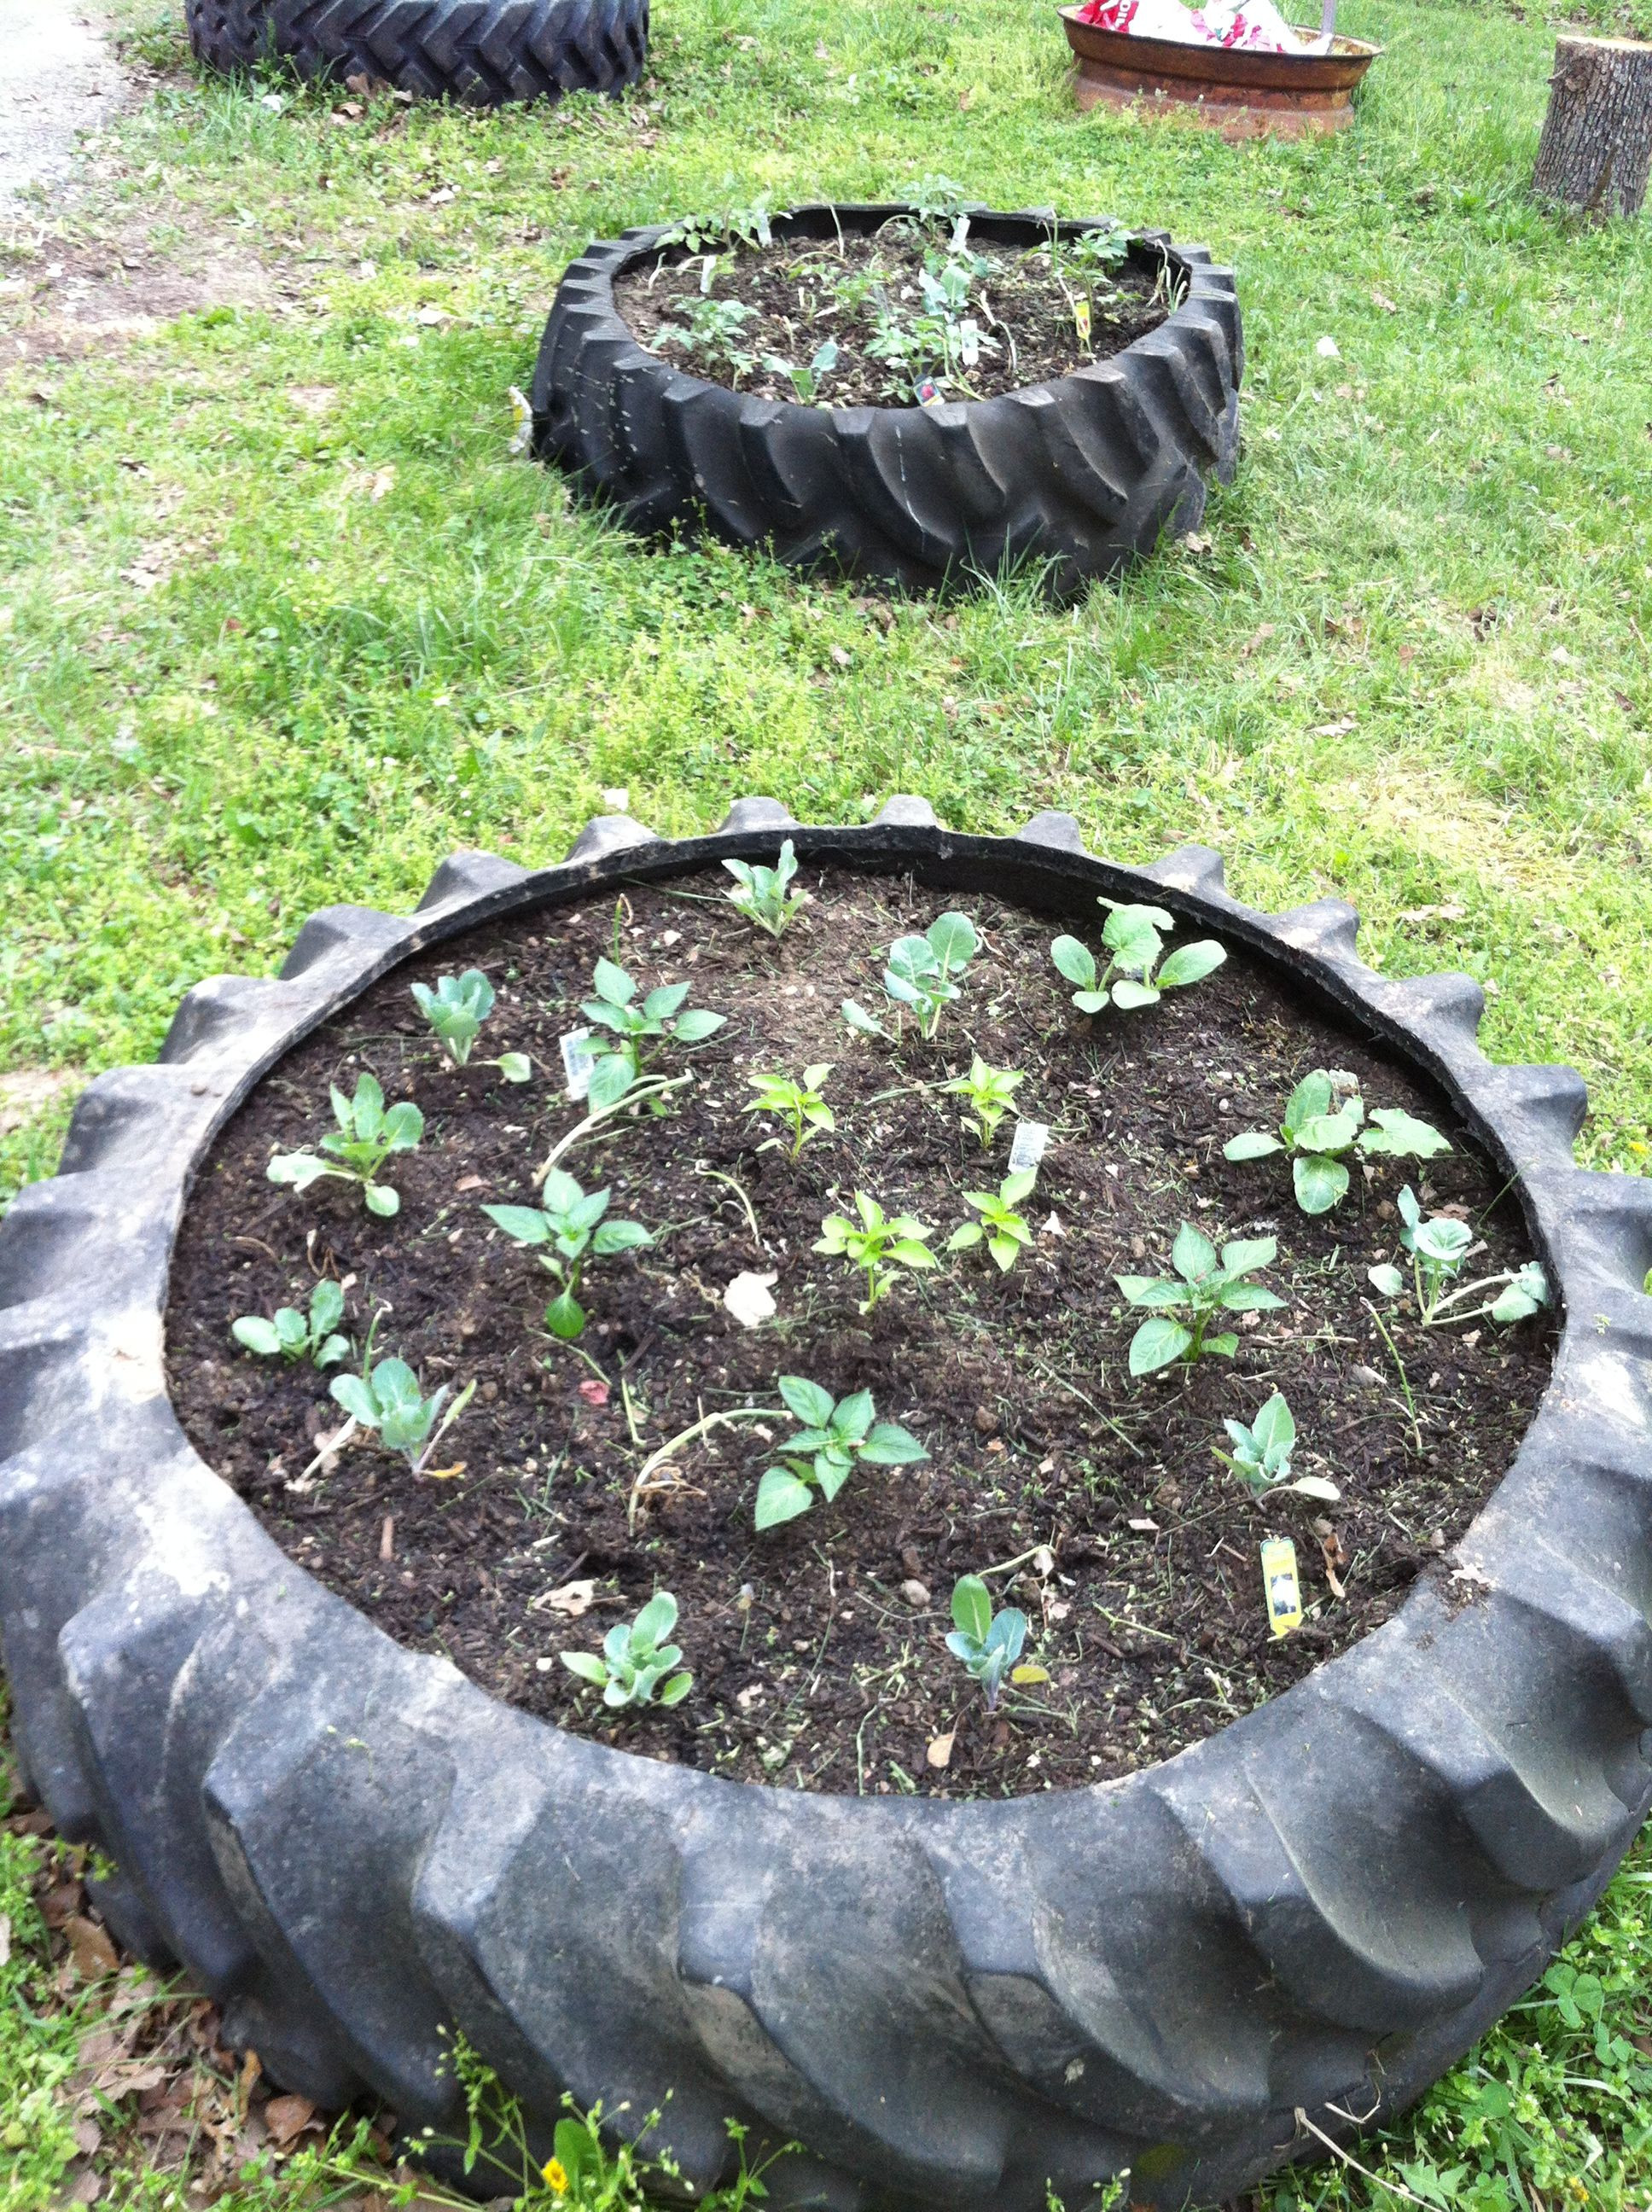 Easy raised garden beds made from recycled tractor tires The rim